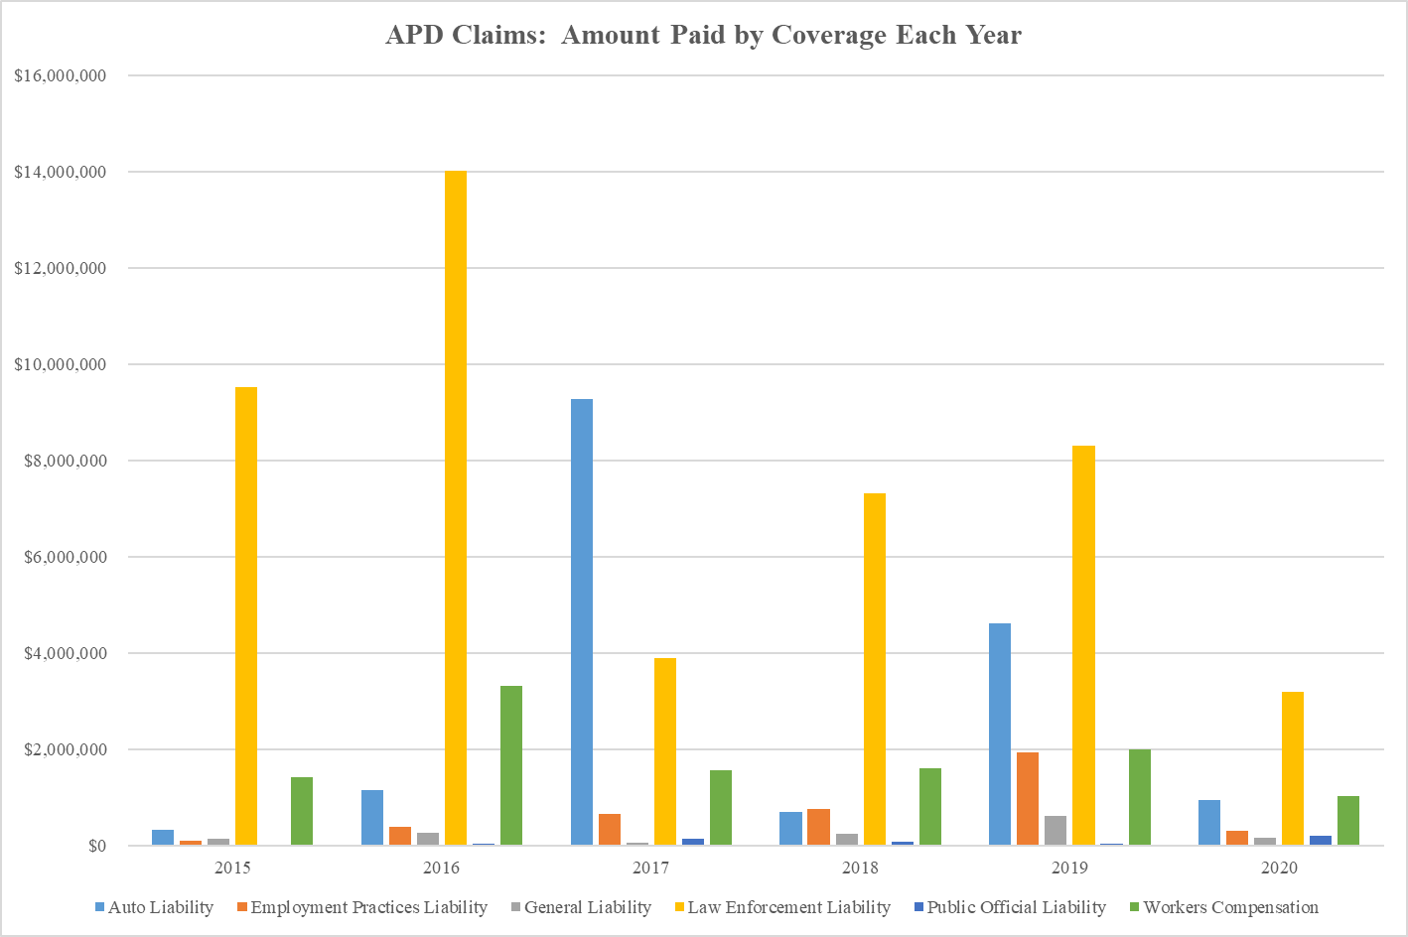 APD Claims Amount Paid by Coverage Each Year as of 2020-06-18